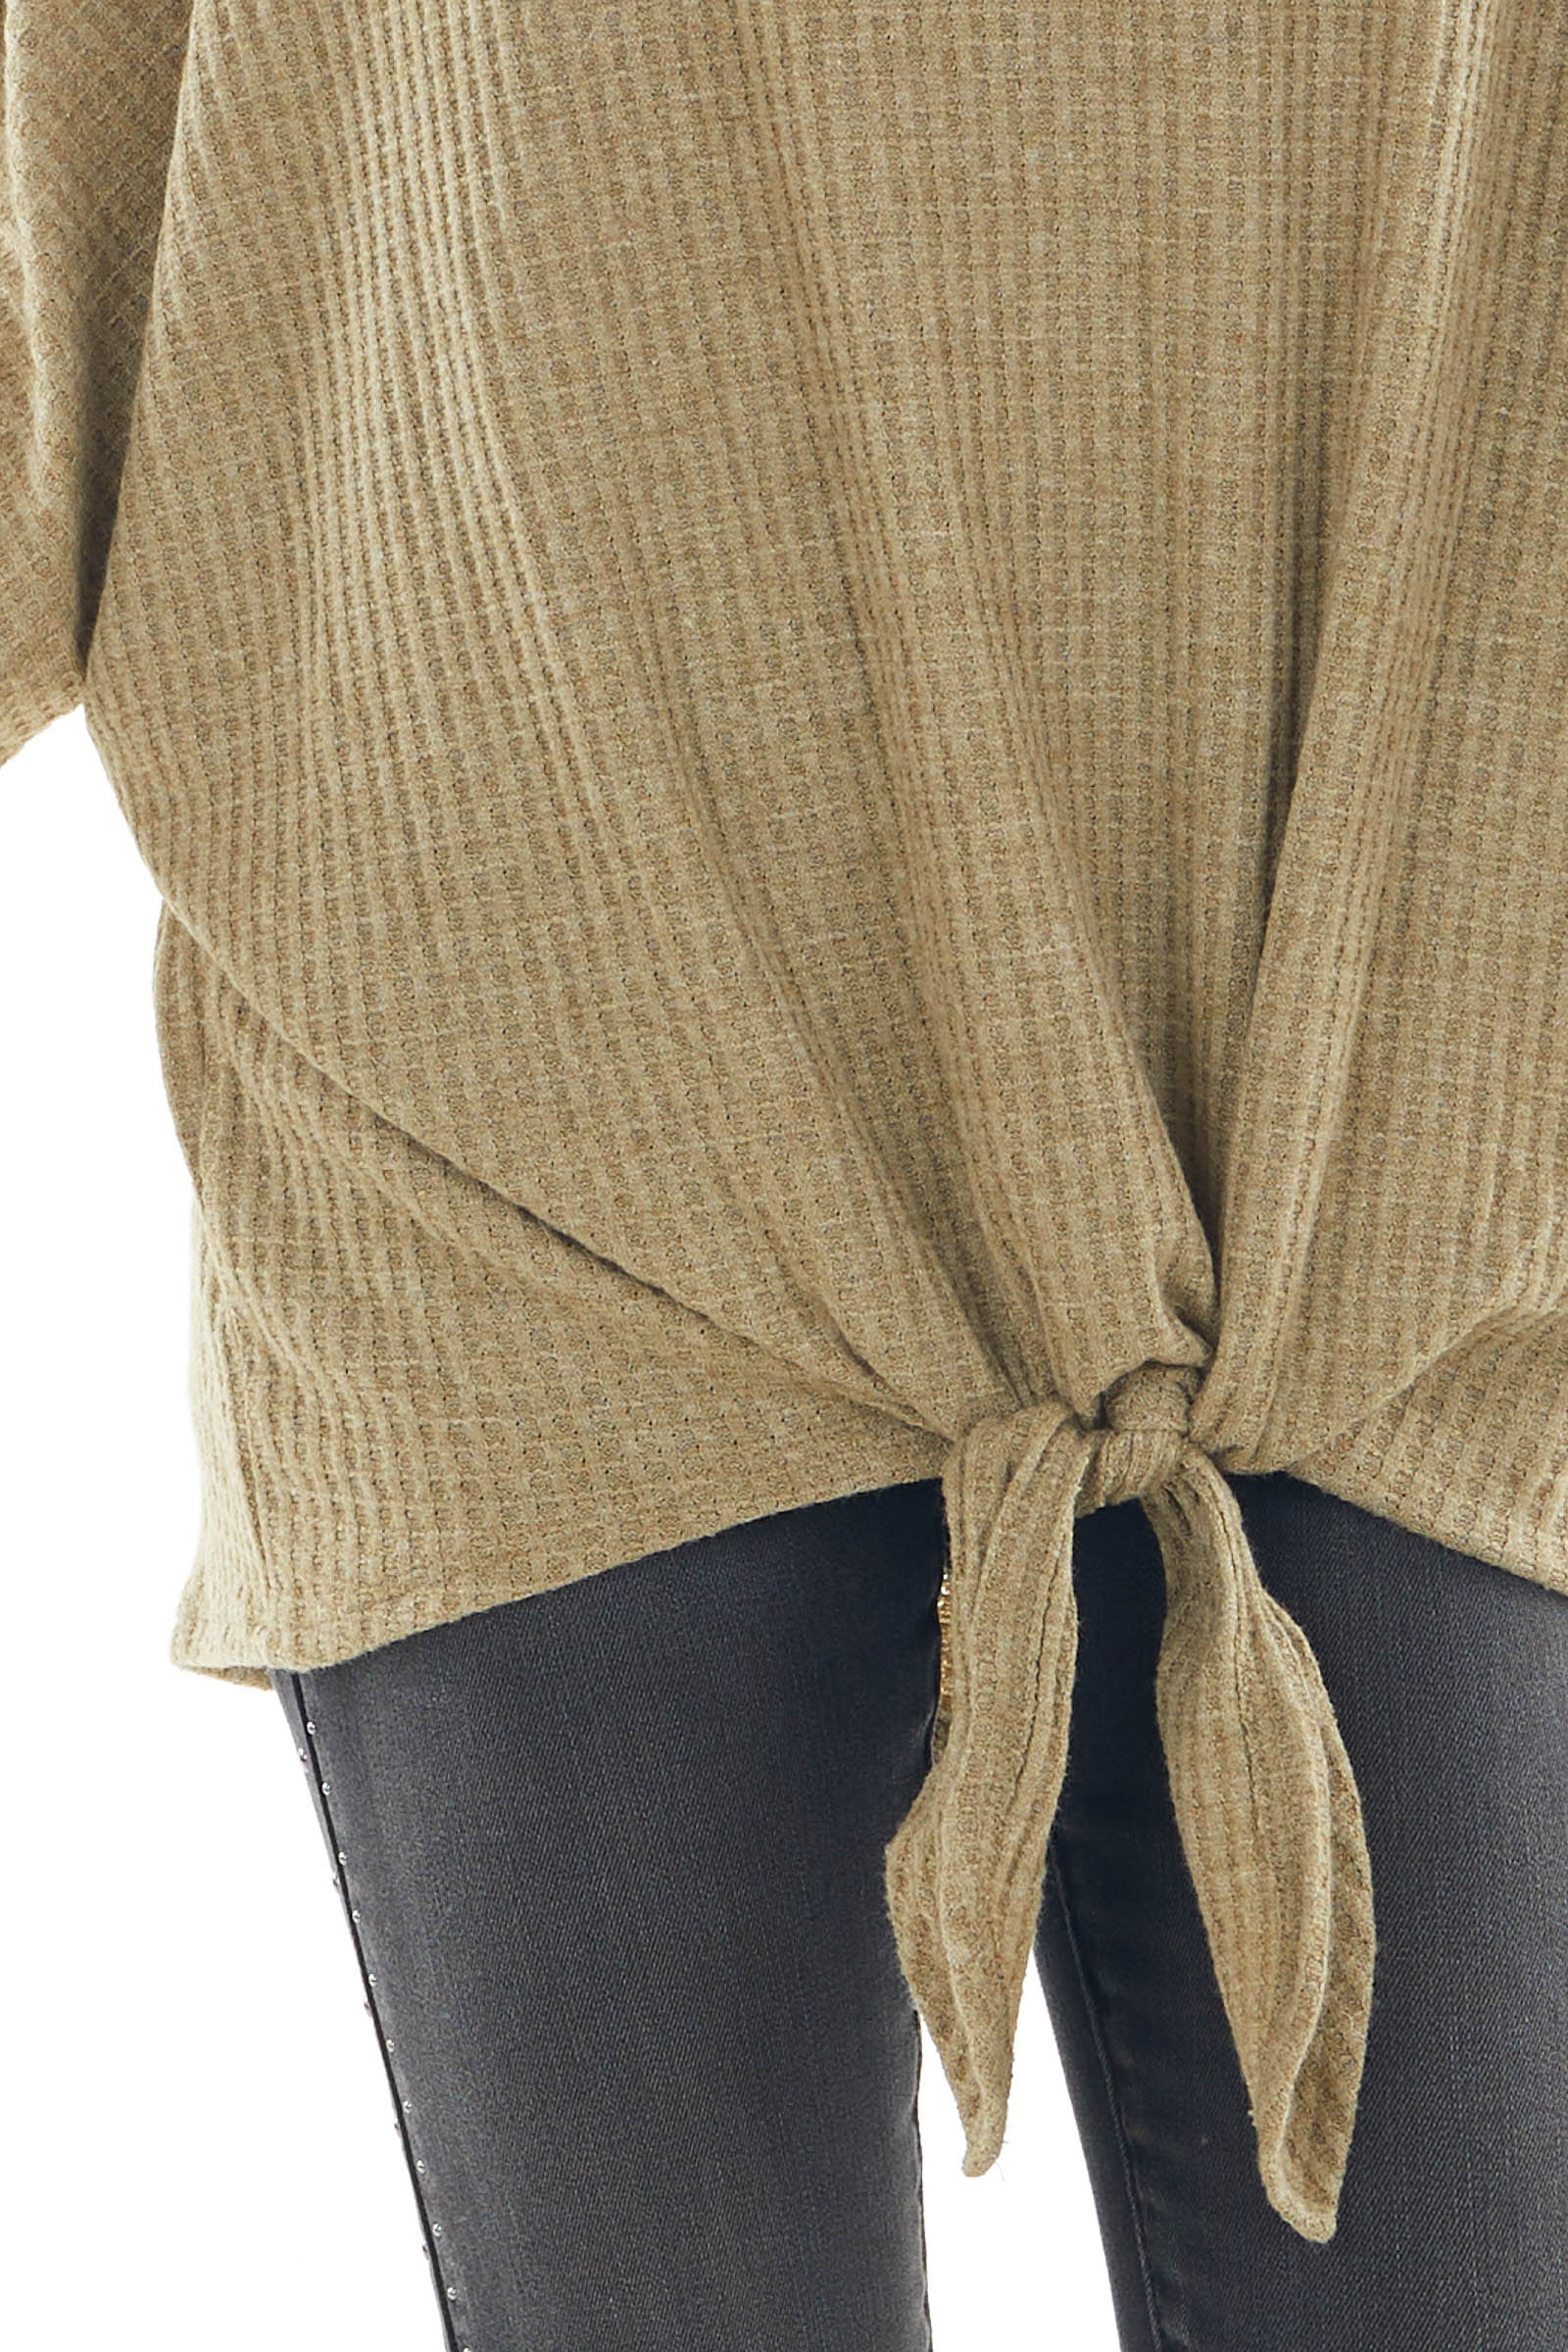 Faded Olive Waffle Knit Boat Neck Top with Tie